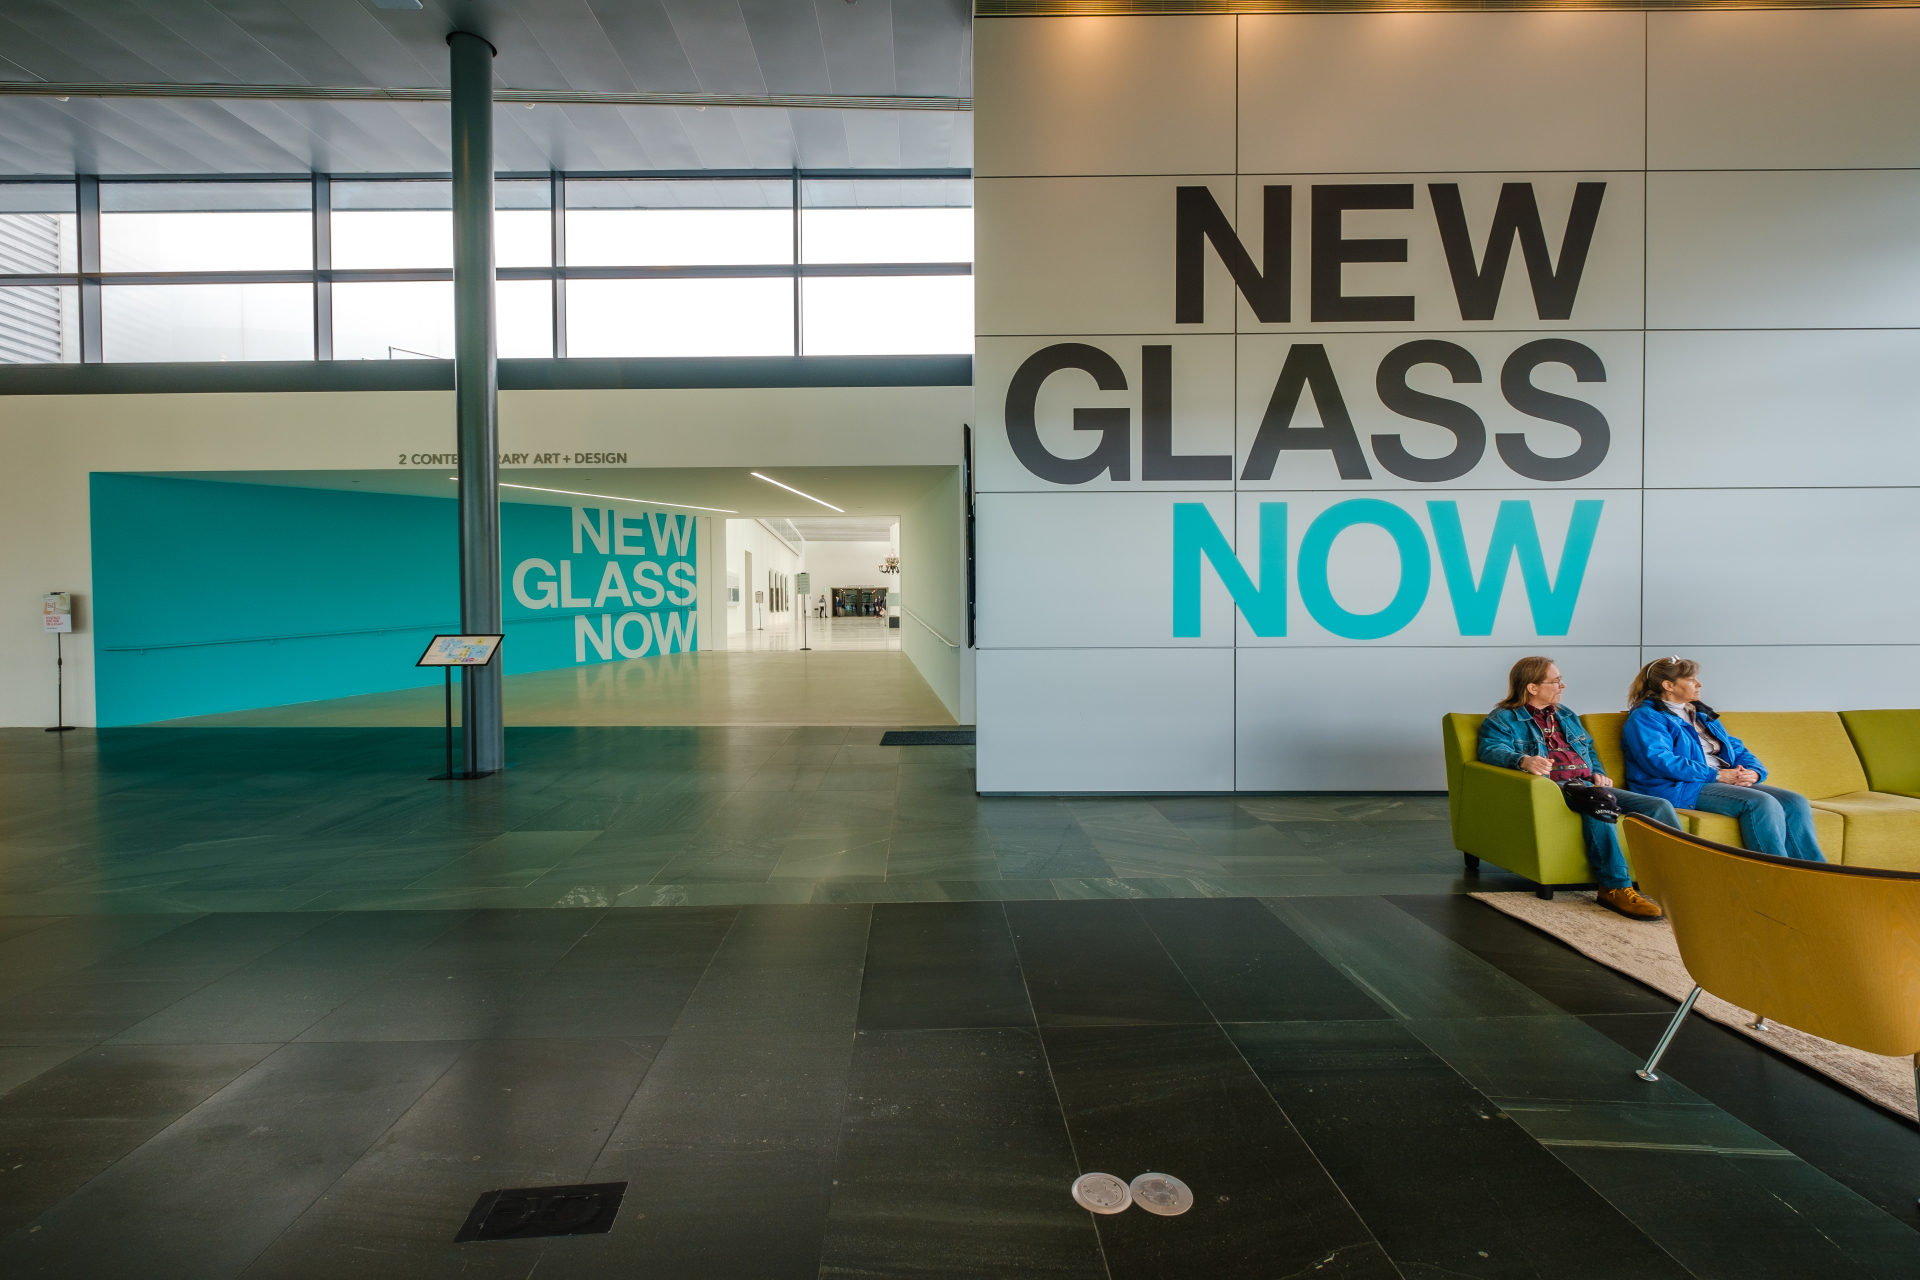 New Glass Now from the Museum Admissions Lobby